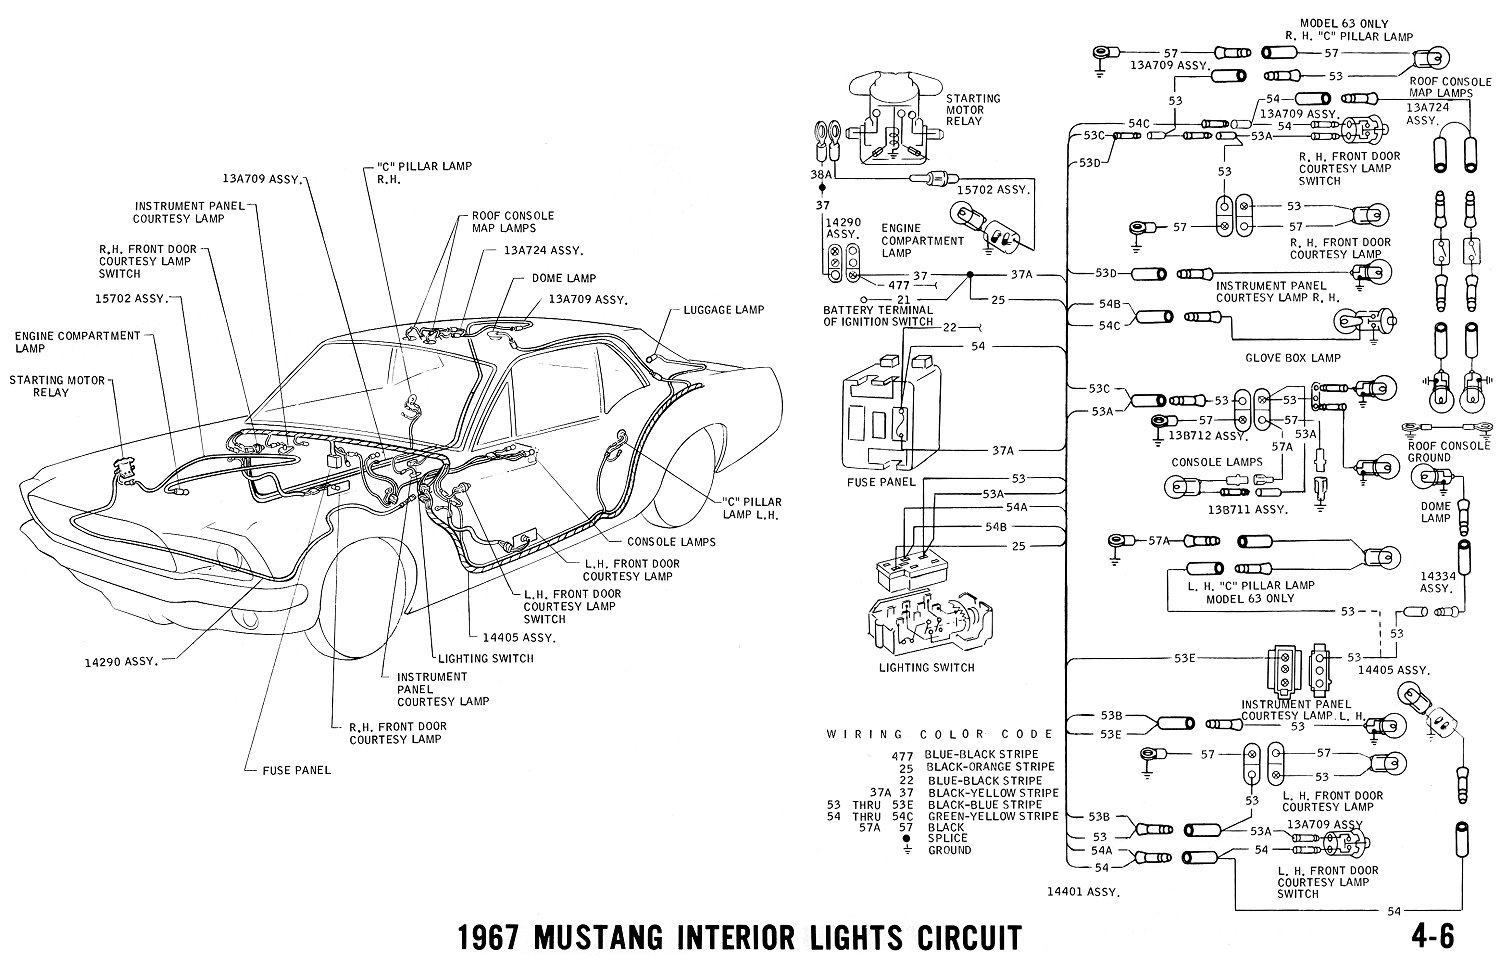 1967 Mustang Under Hood Wiring Diagram Schematic Library Drag Car 1970 El Camino 1973 Pictorial And